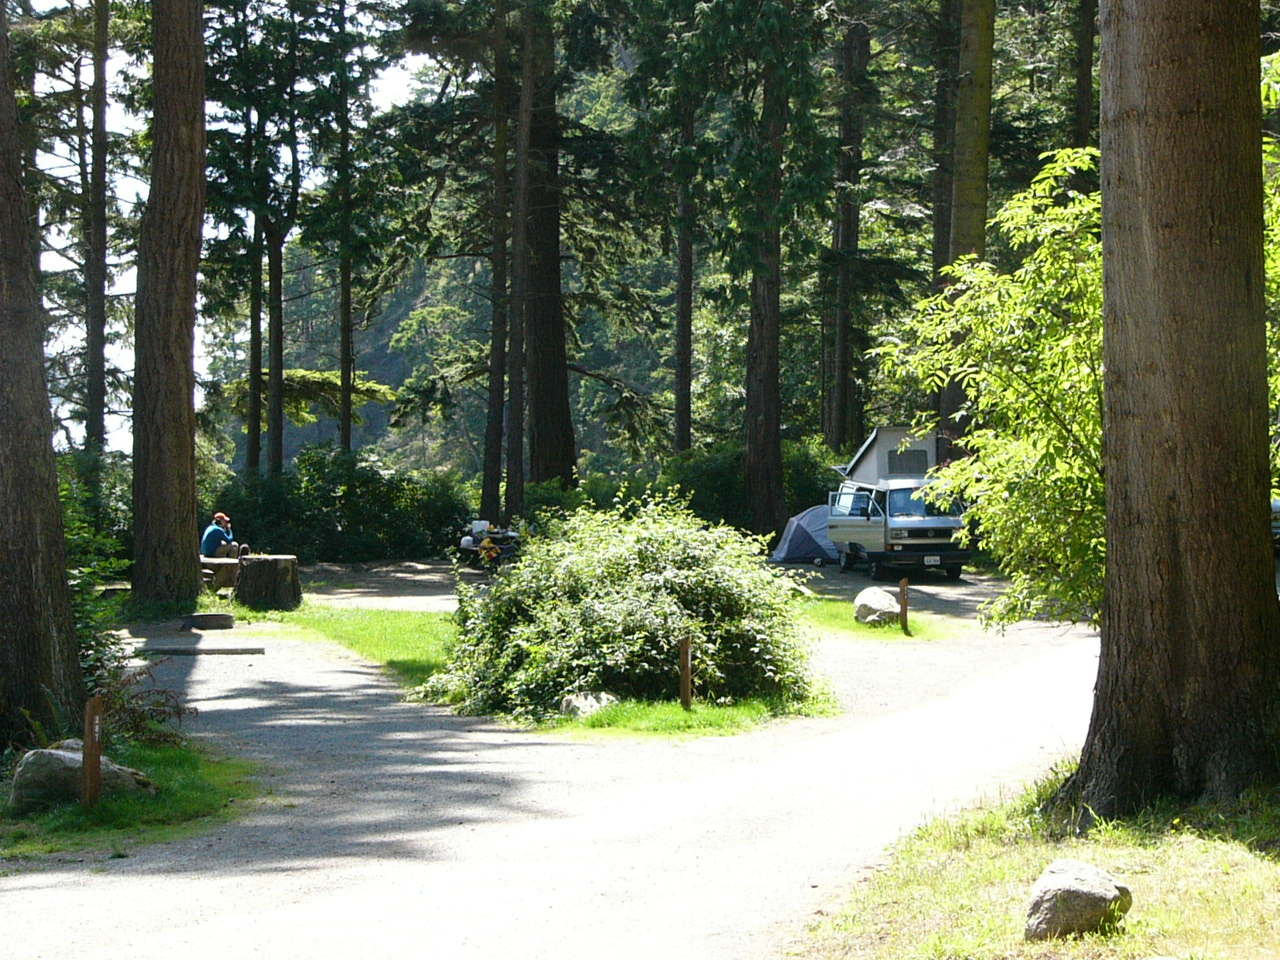 Camping deception pass park foundation for Camping grounds with cabins